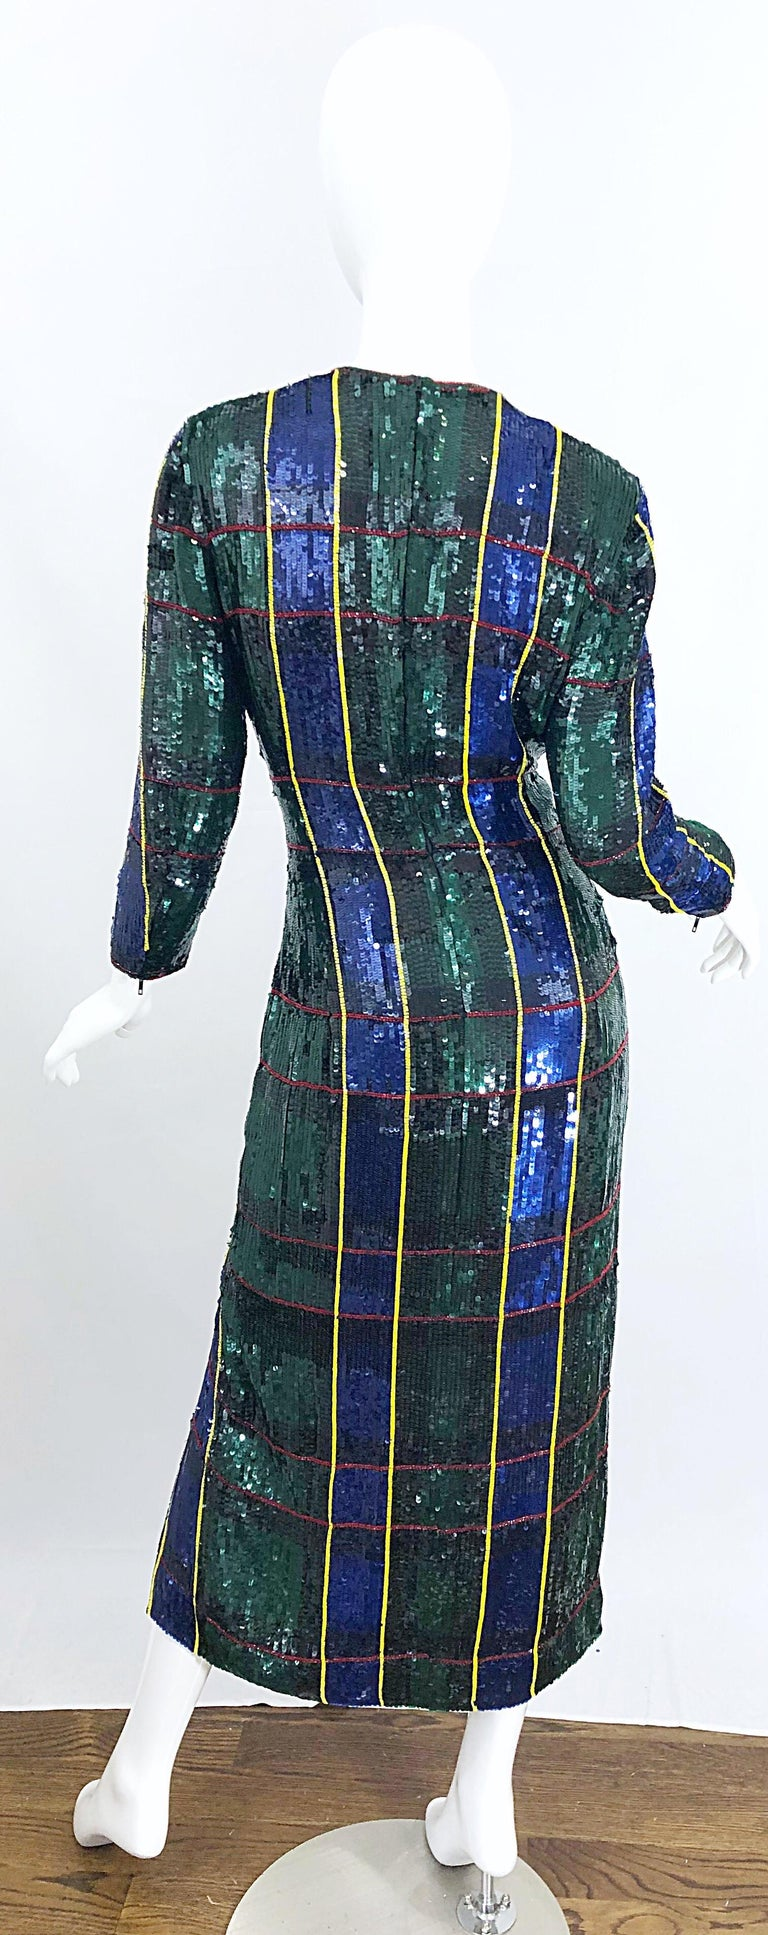 1990s Escada Couture Tartan Plaid Fully Sequined Silk Vintage 90s Evening Gown In Excellent Condition For Sale In Chicago, IL